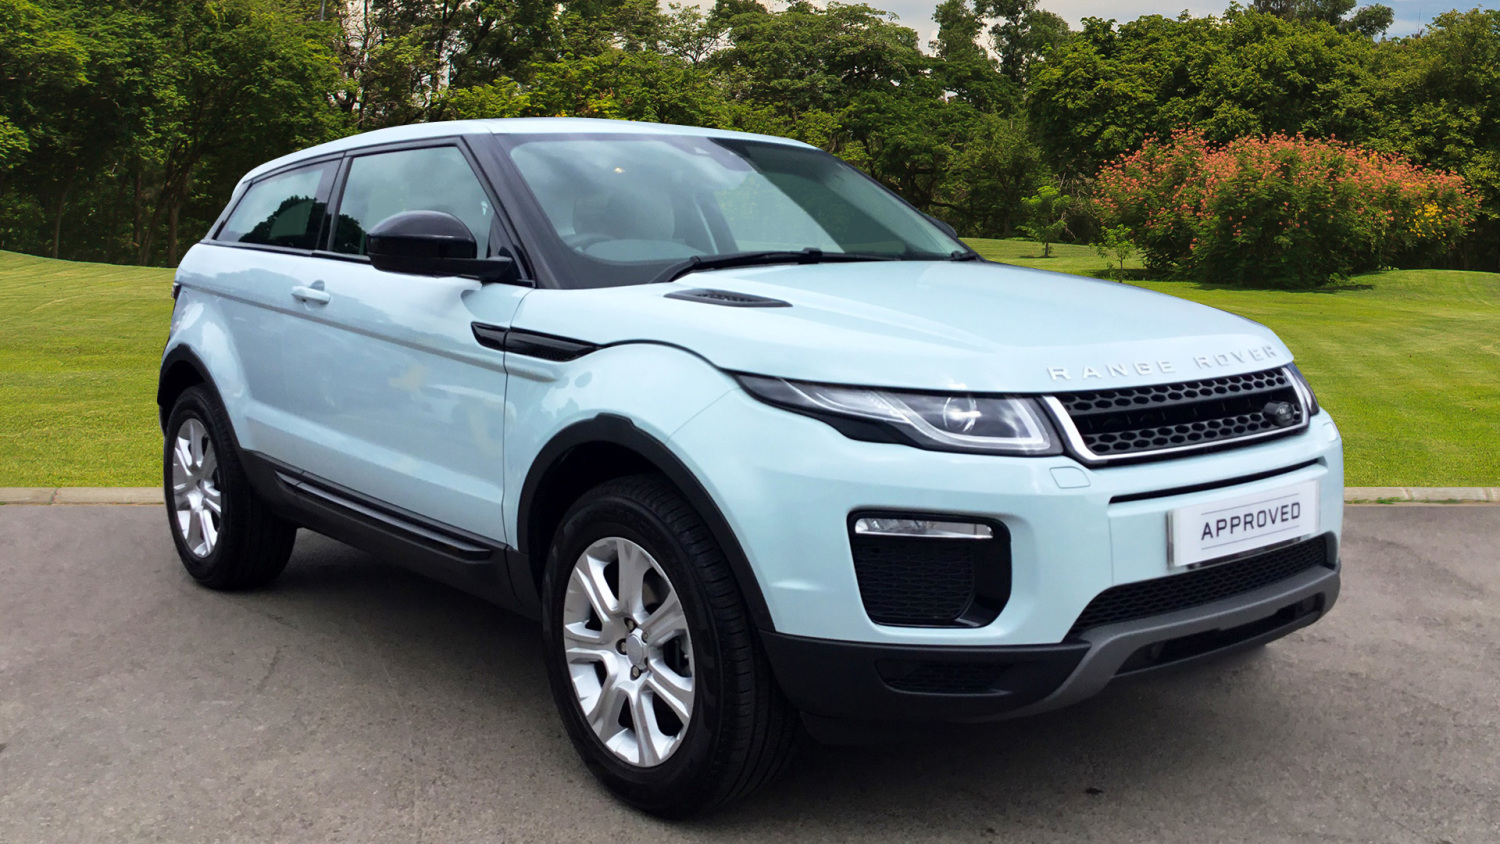 used land rover range rover evoque 2 0 ed4 se tech 3dr 2wd diesel coupe for sale newcastle. Black Bedroom Furniture Sets. Home Design Ideas